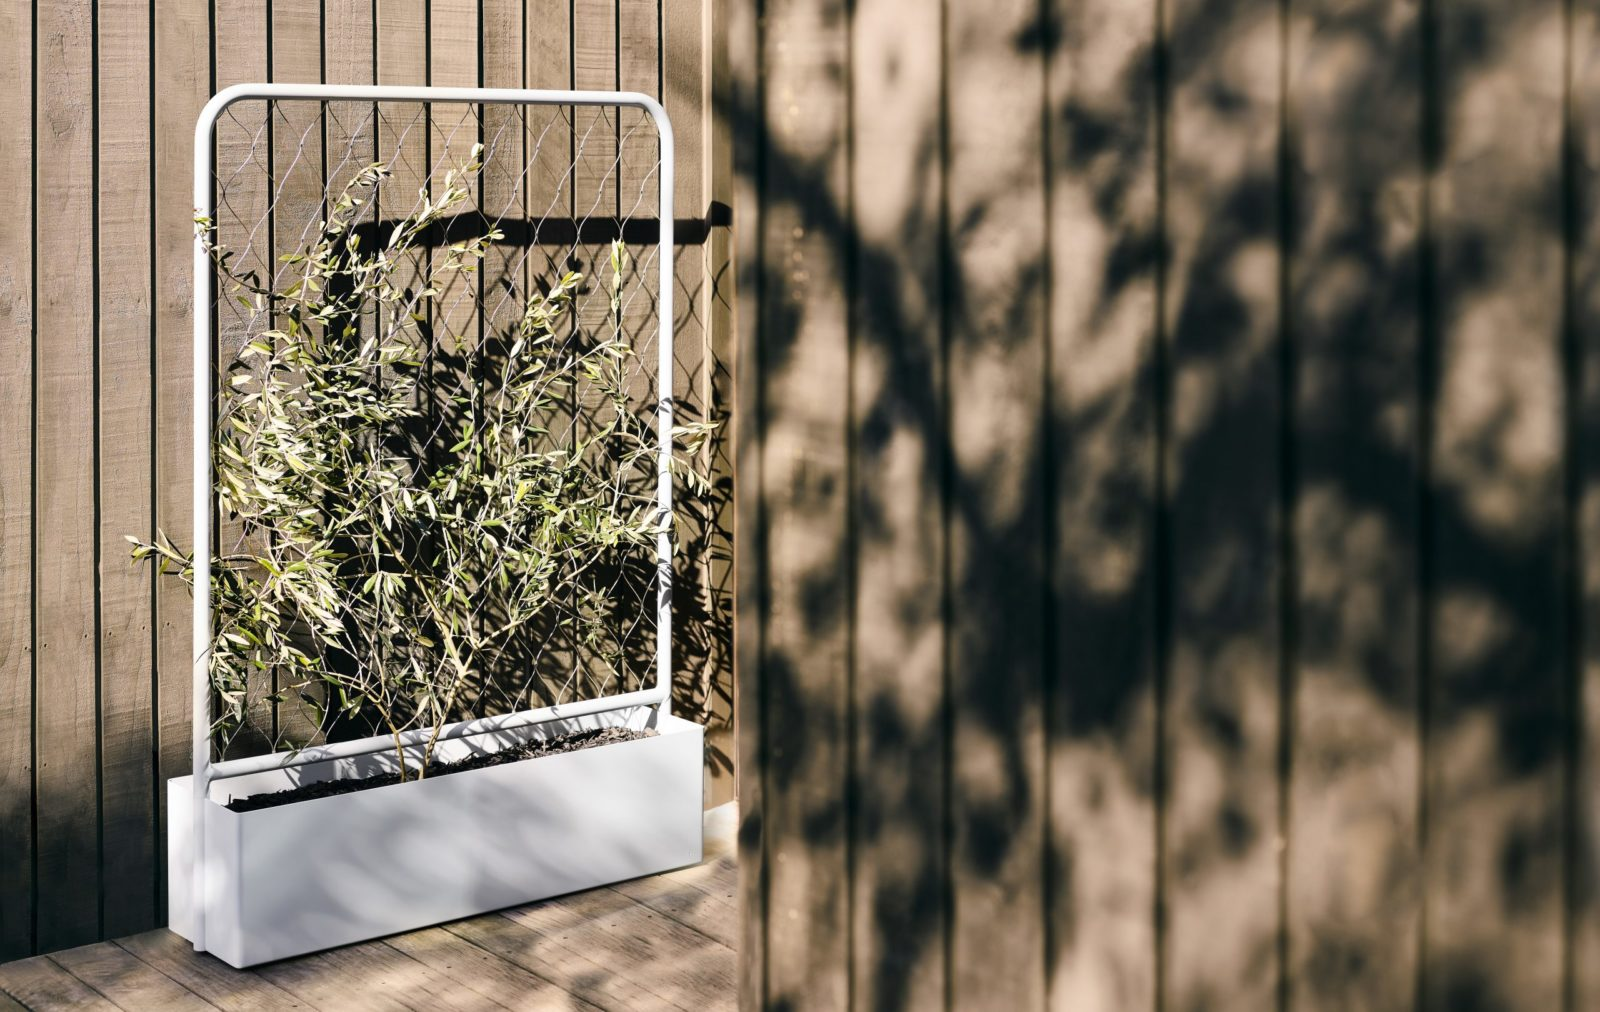 The Trace Planter is a luxury outdoor planter box created to bring wellbeing and functionality to outdoor design and introduce greenlife.